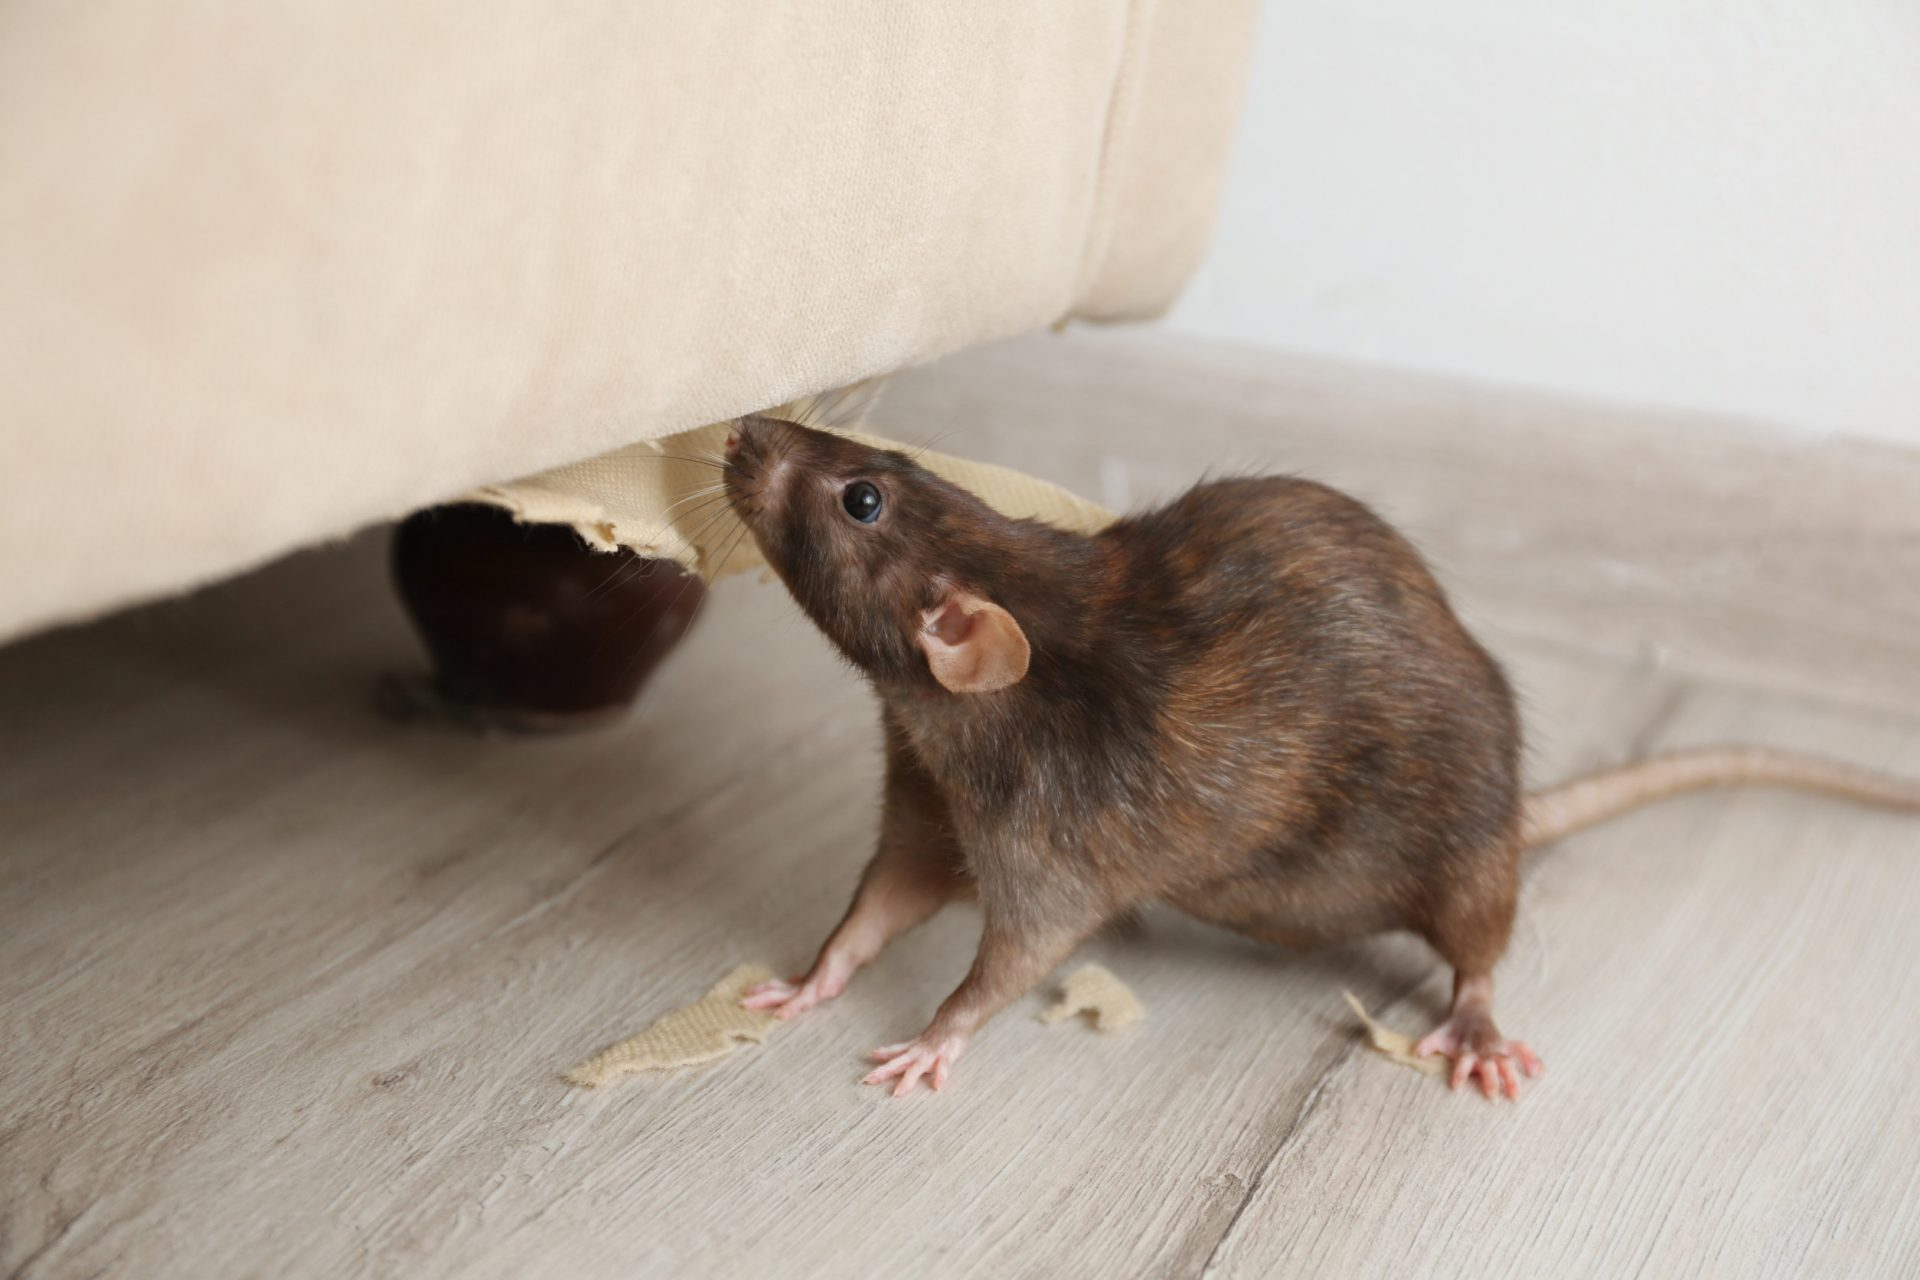 How to Handle a Rodent Problem | Exterminator in Severna Park | Raven Termite and Pest Control